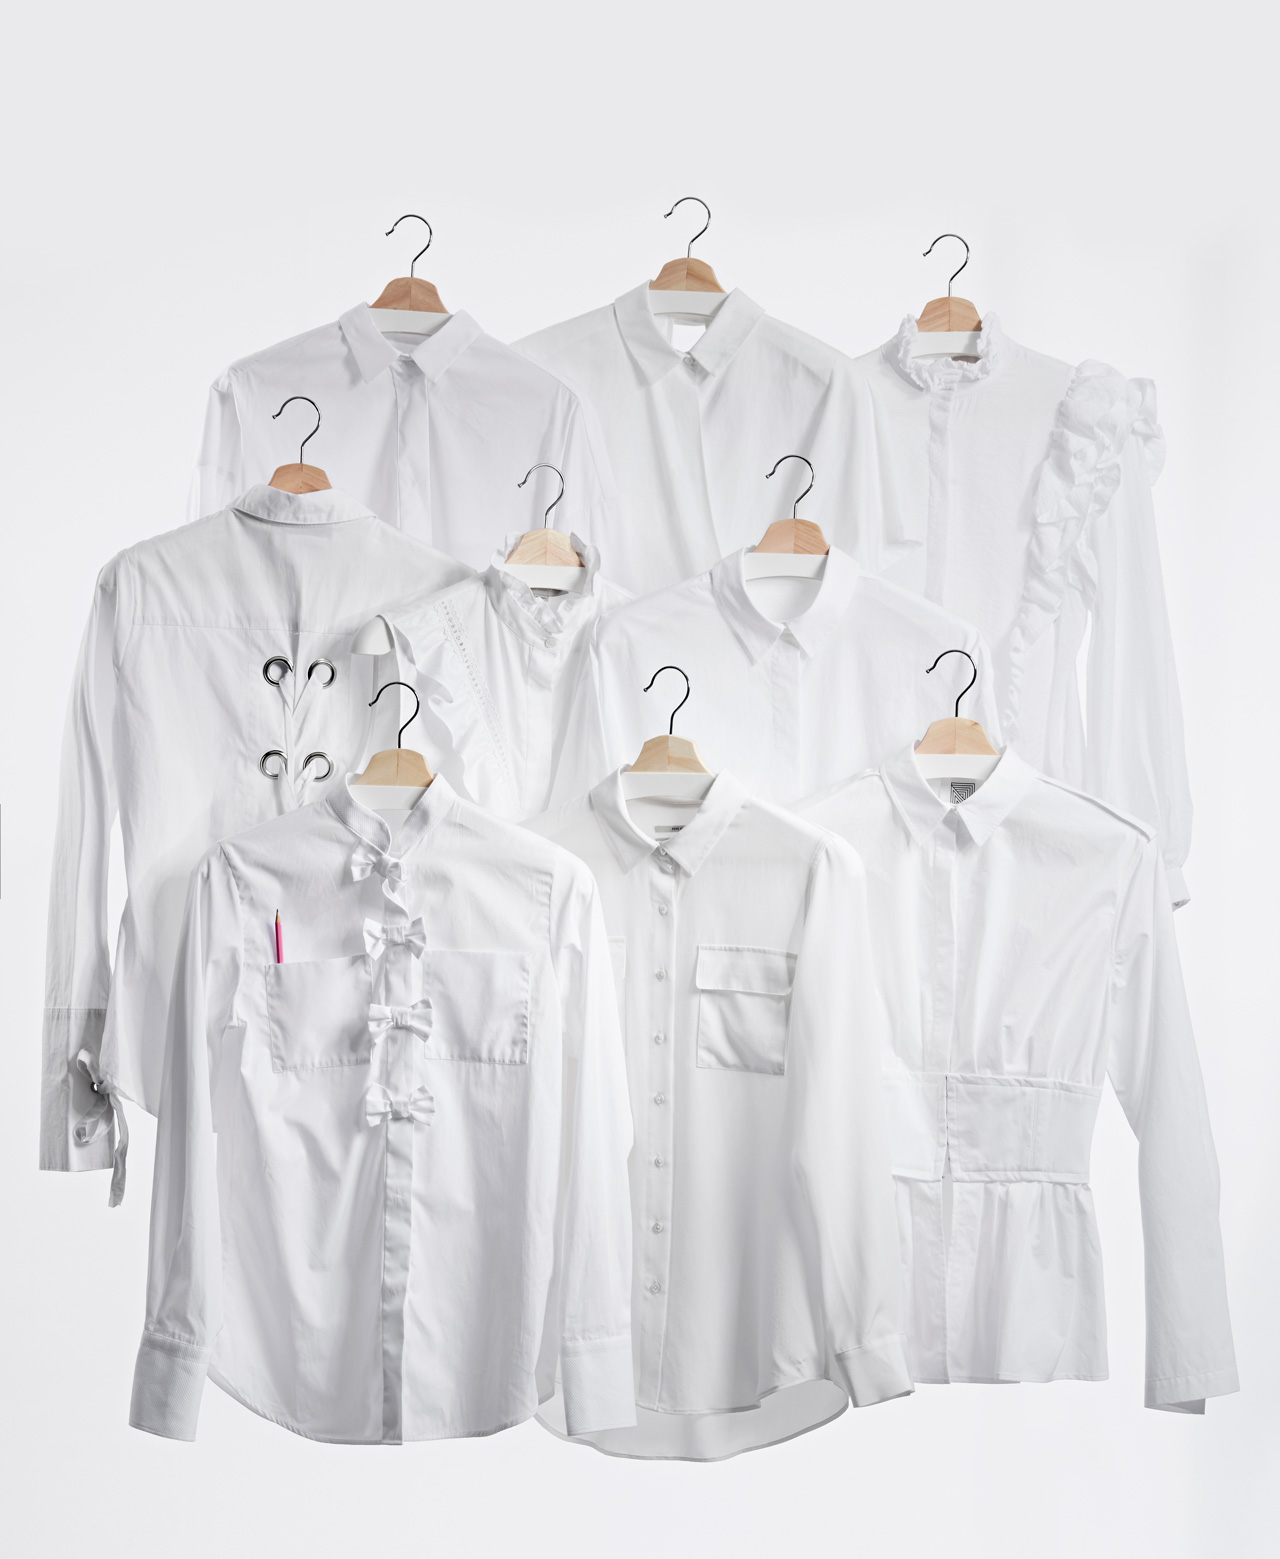 WhiteShirts_bodyimage